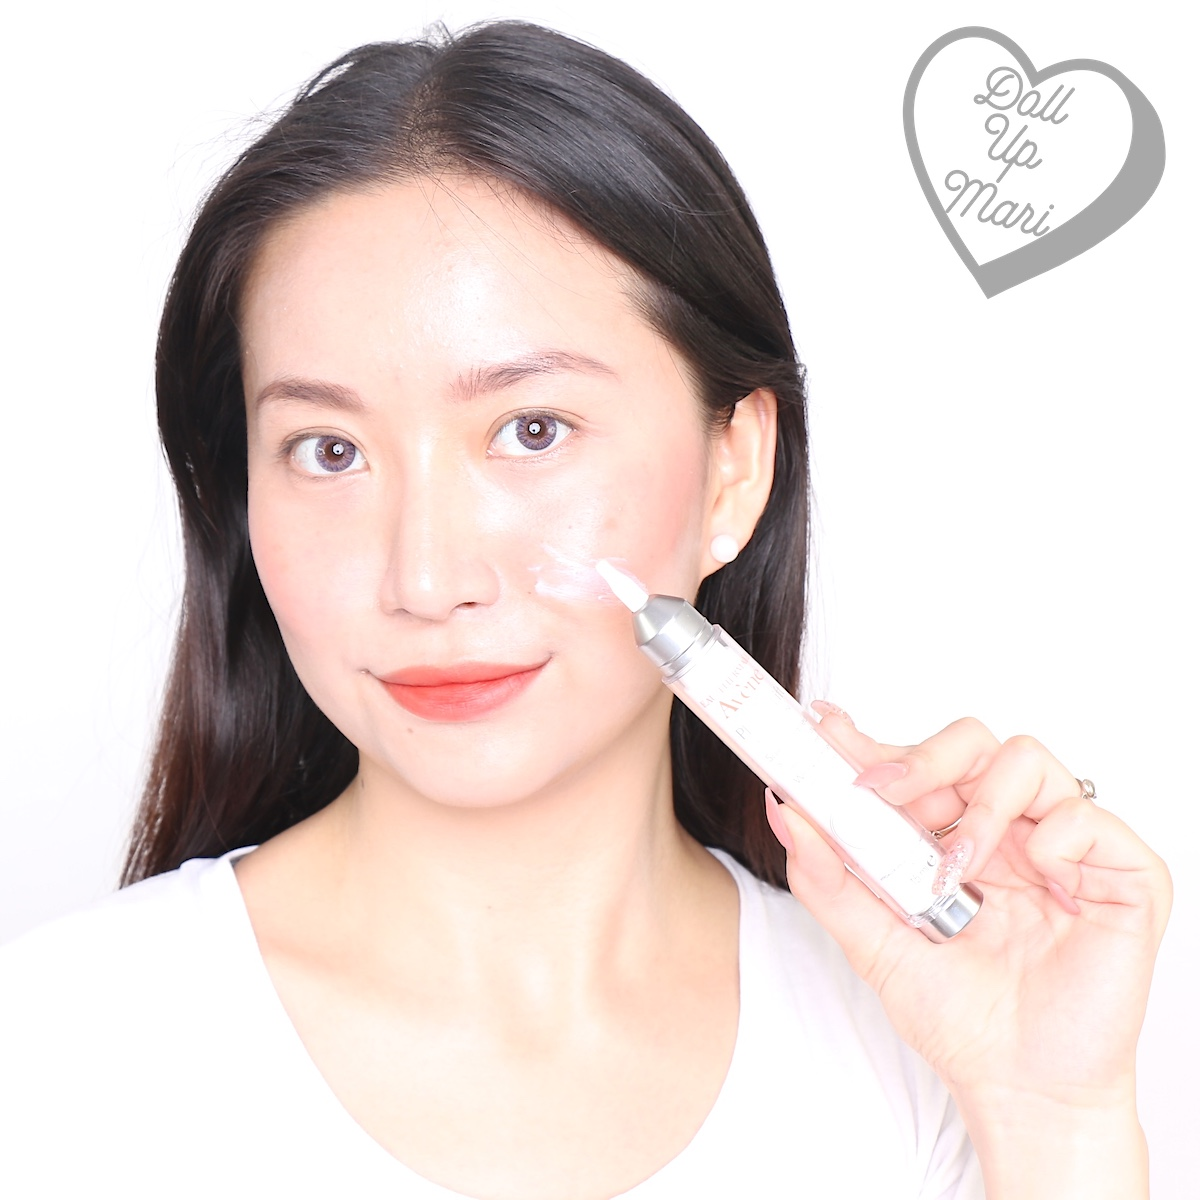 dollupmari posing with Avène PhysioLift Precision Wrinkle Filler